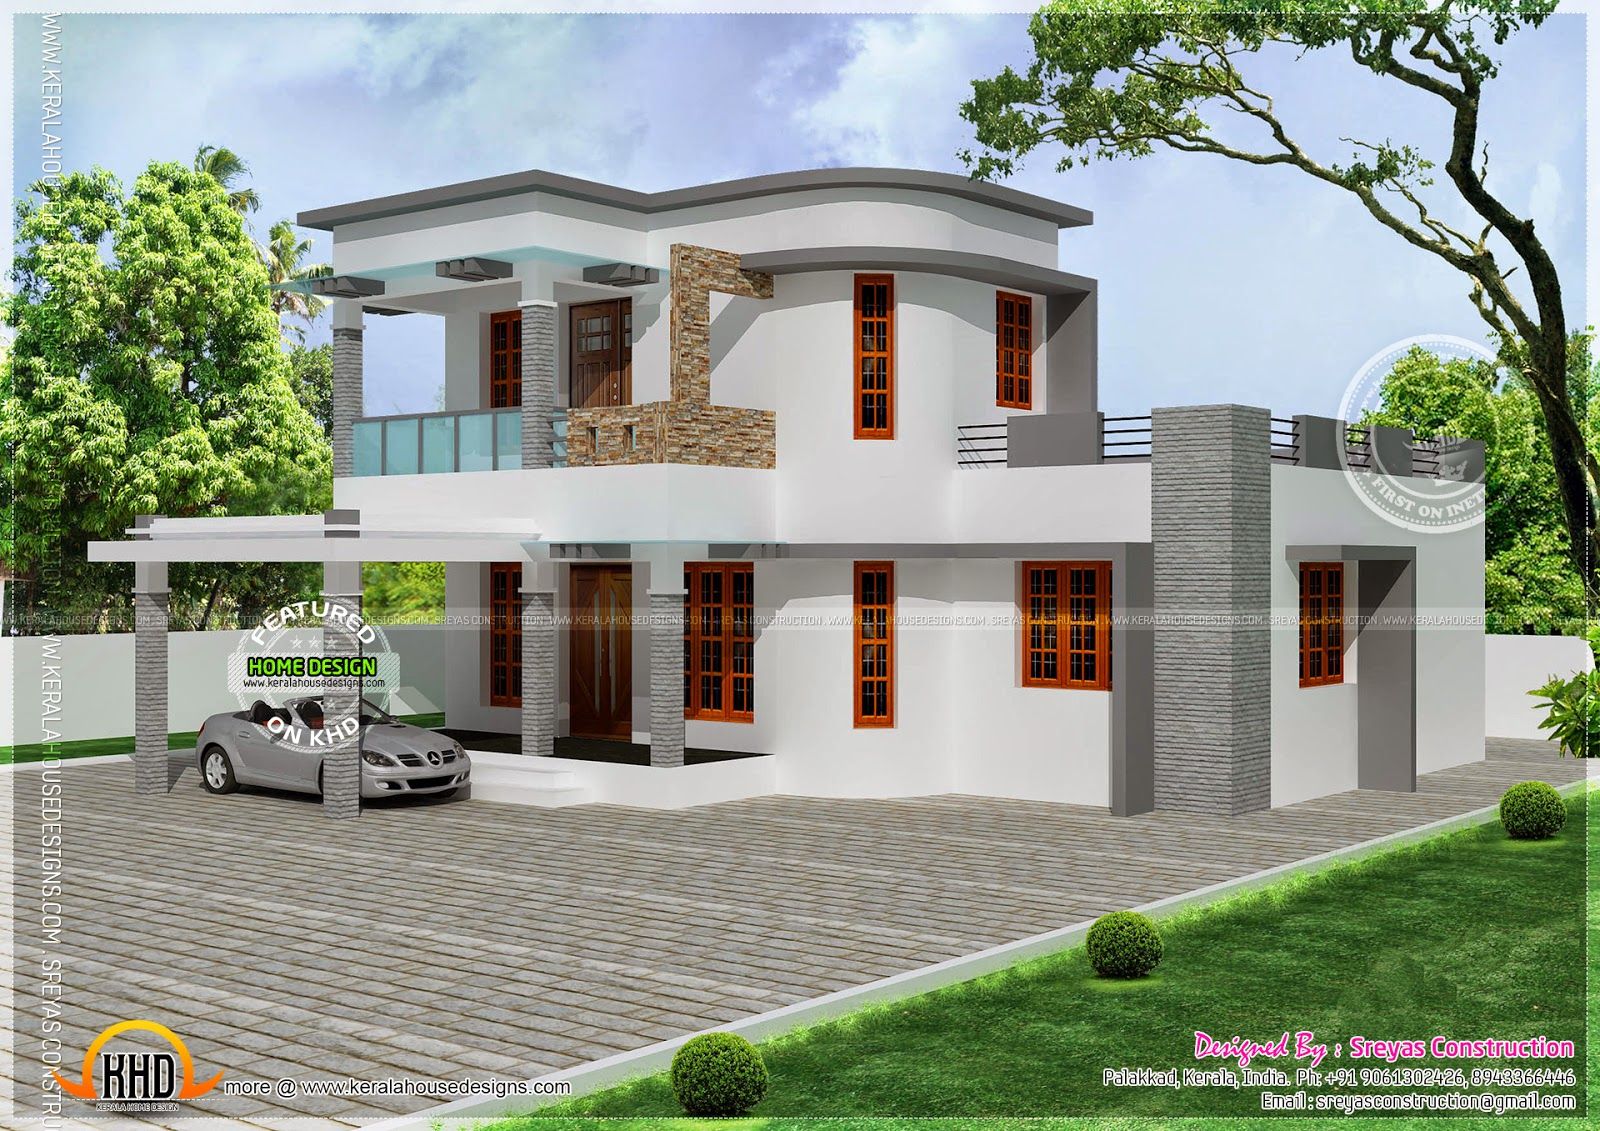 Flat With Curvy Mix Roof House Kerala Home Design And Floor Plans